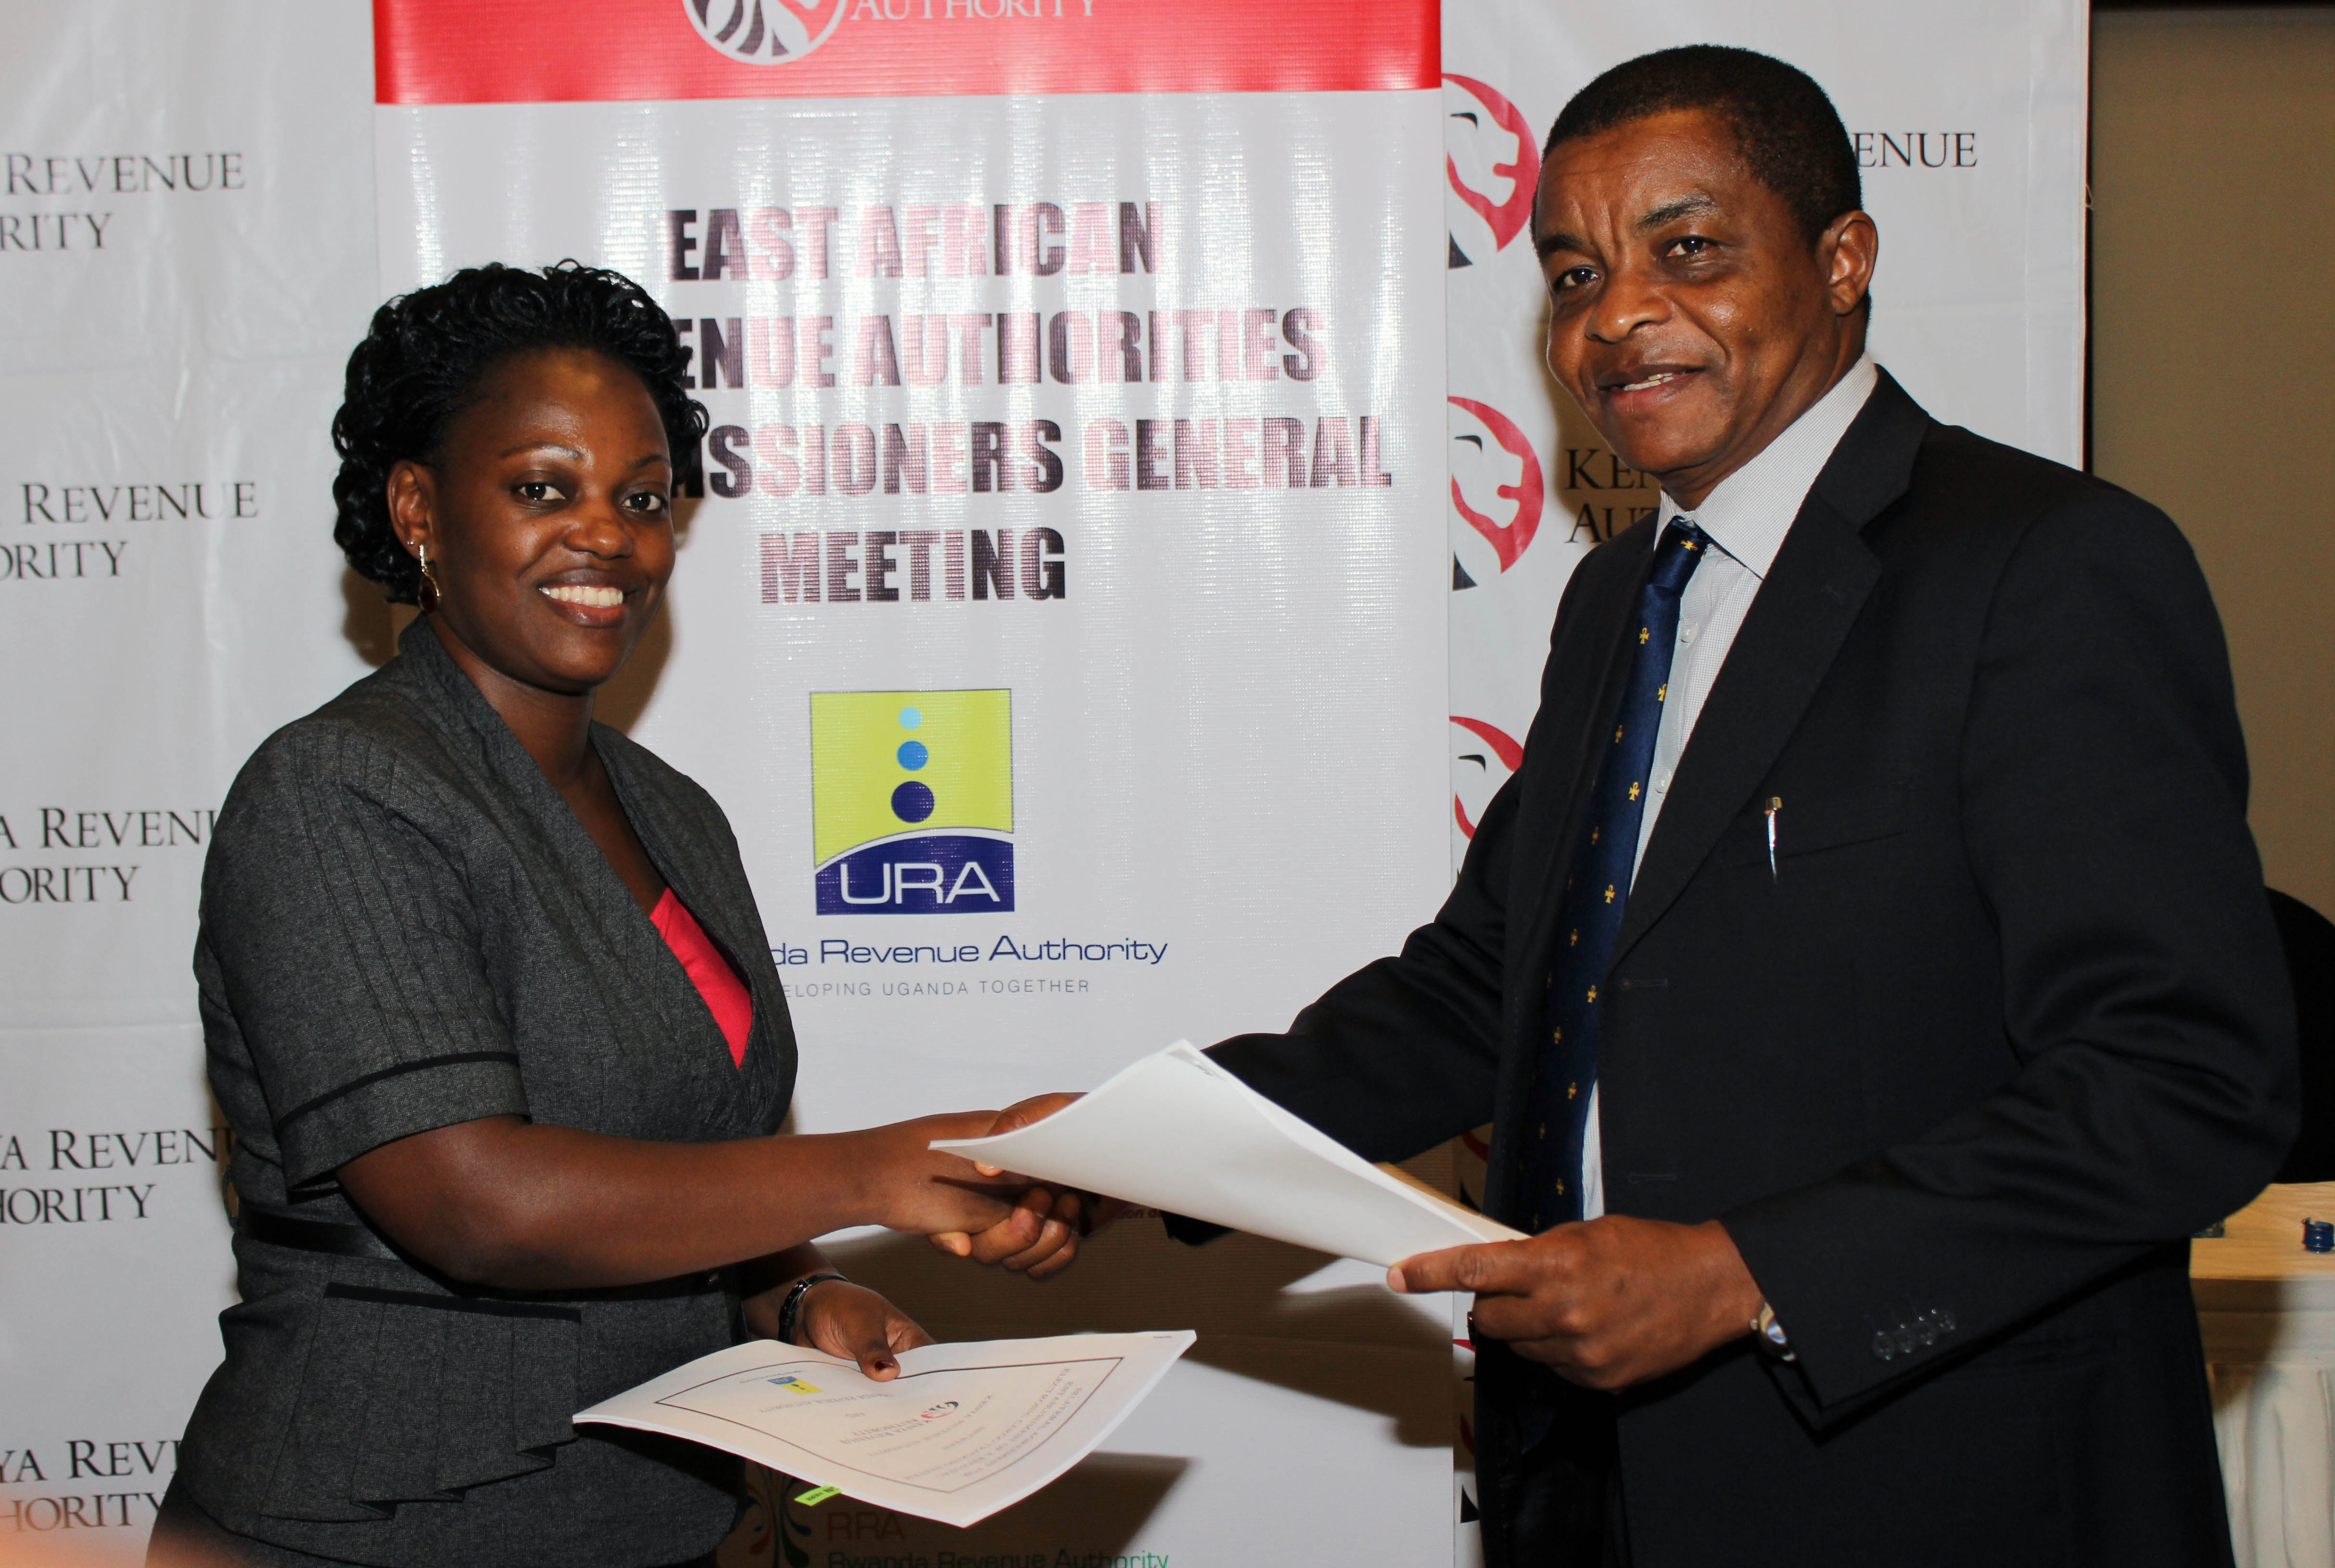 Kenya And Uganda To Roll Out Electronic Cargo Tracking